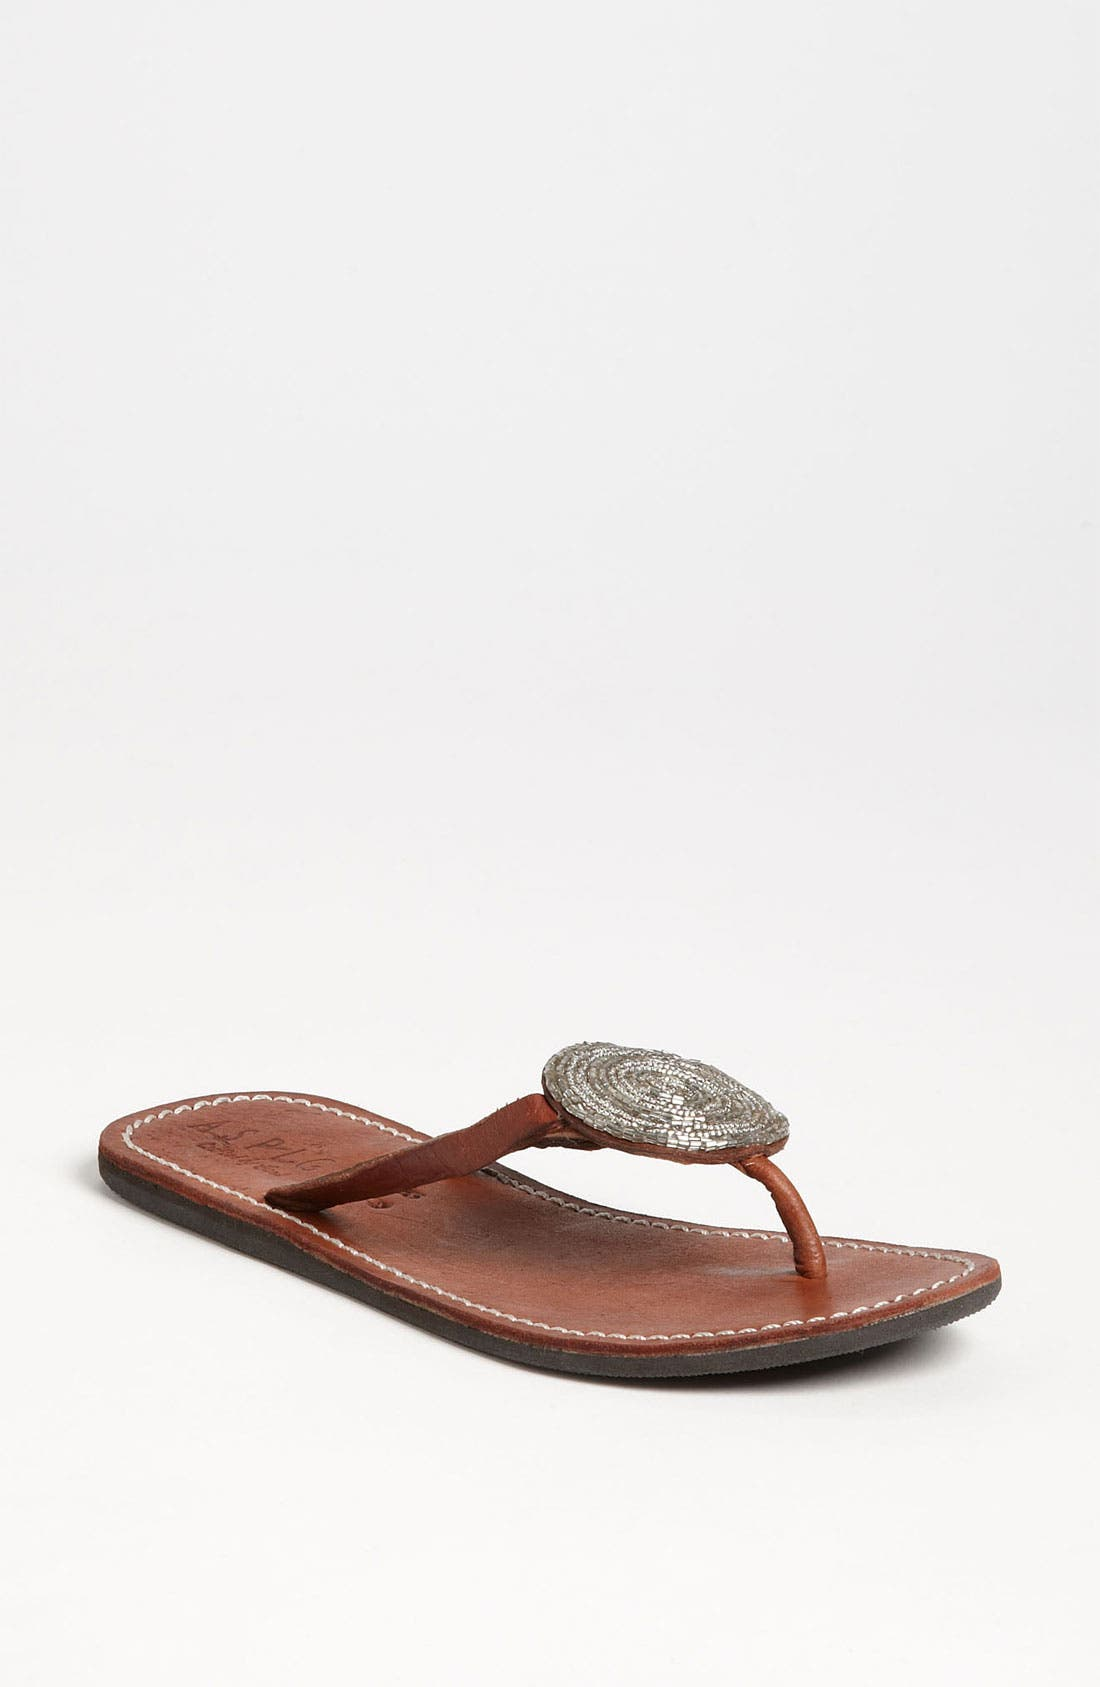 Alternate Image 1 Selected - Aspiga Disc Sandal